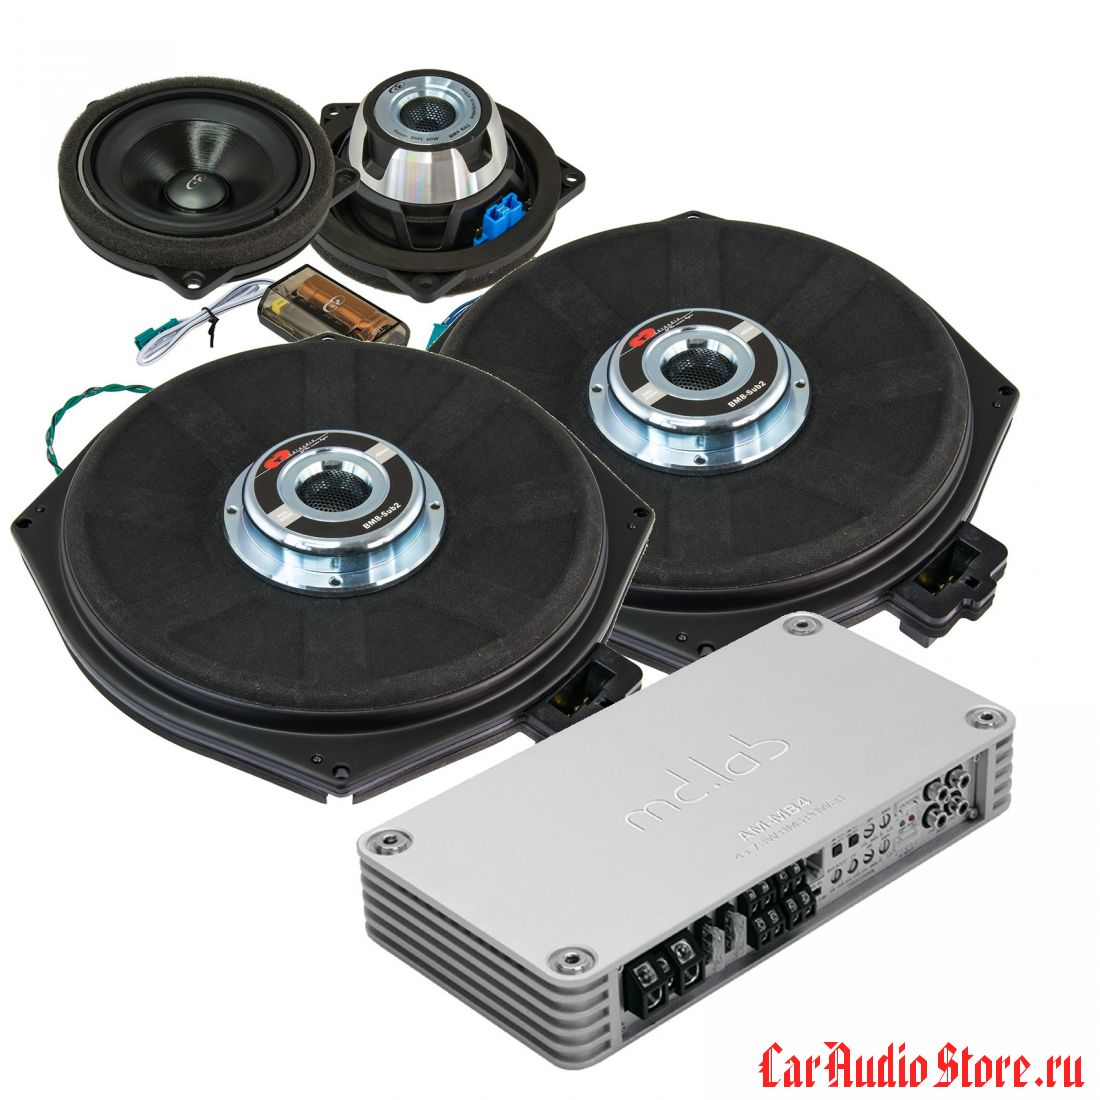 Base Kit Plus CDT Audio 1.2 (MD LAB)